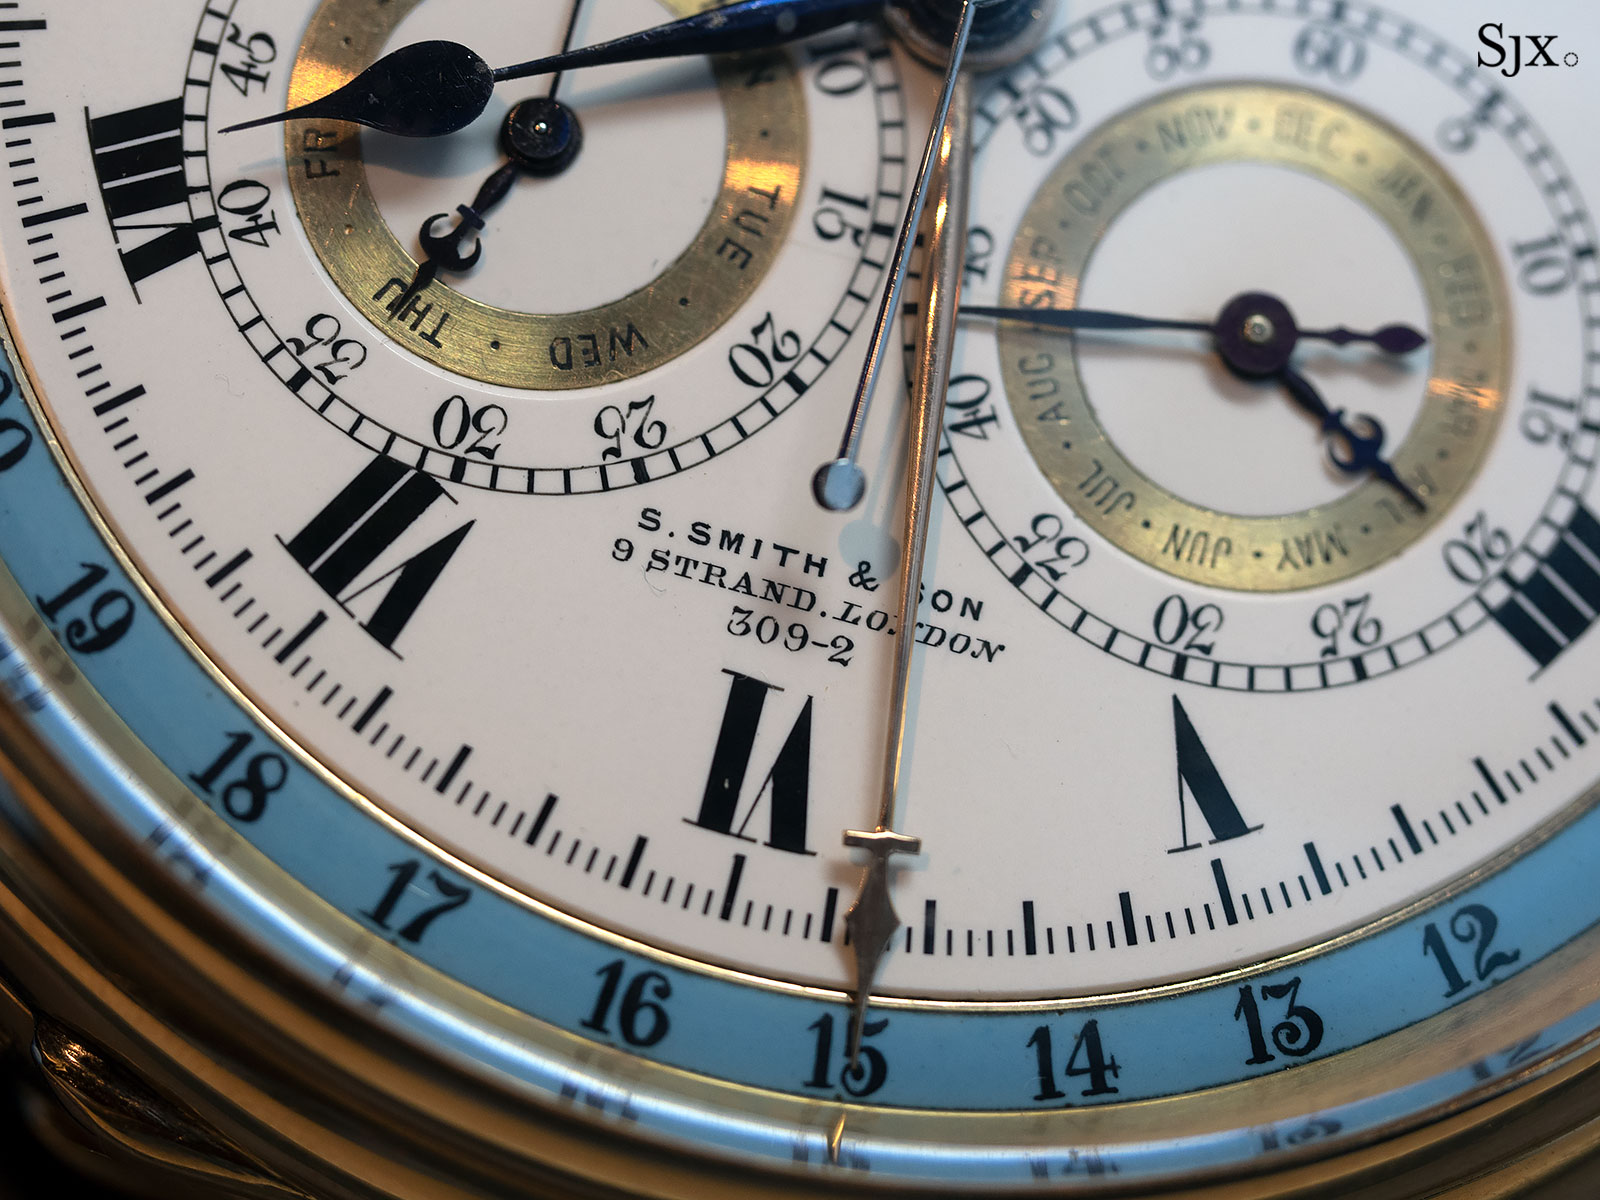 s.smith son grande sonnerie clockwatch chronograph 3